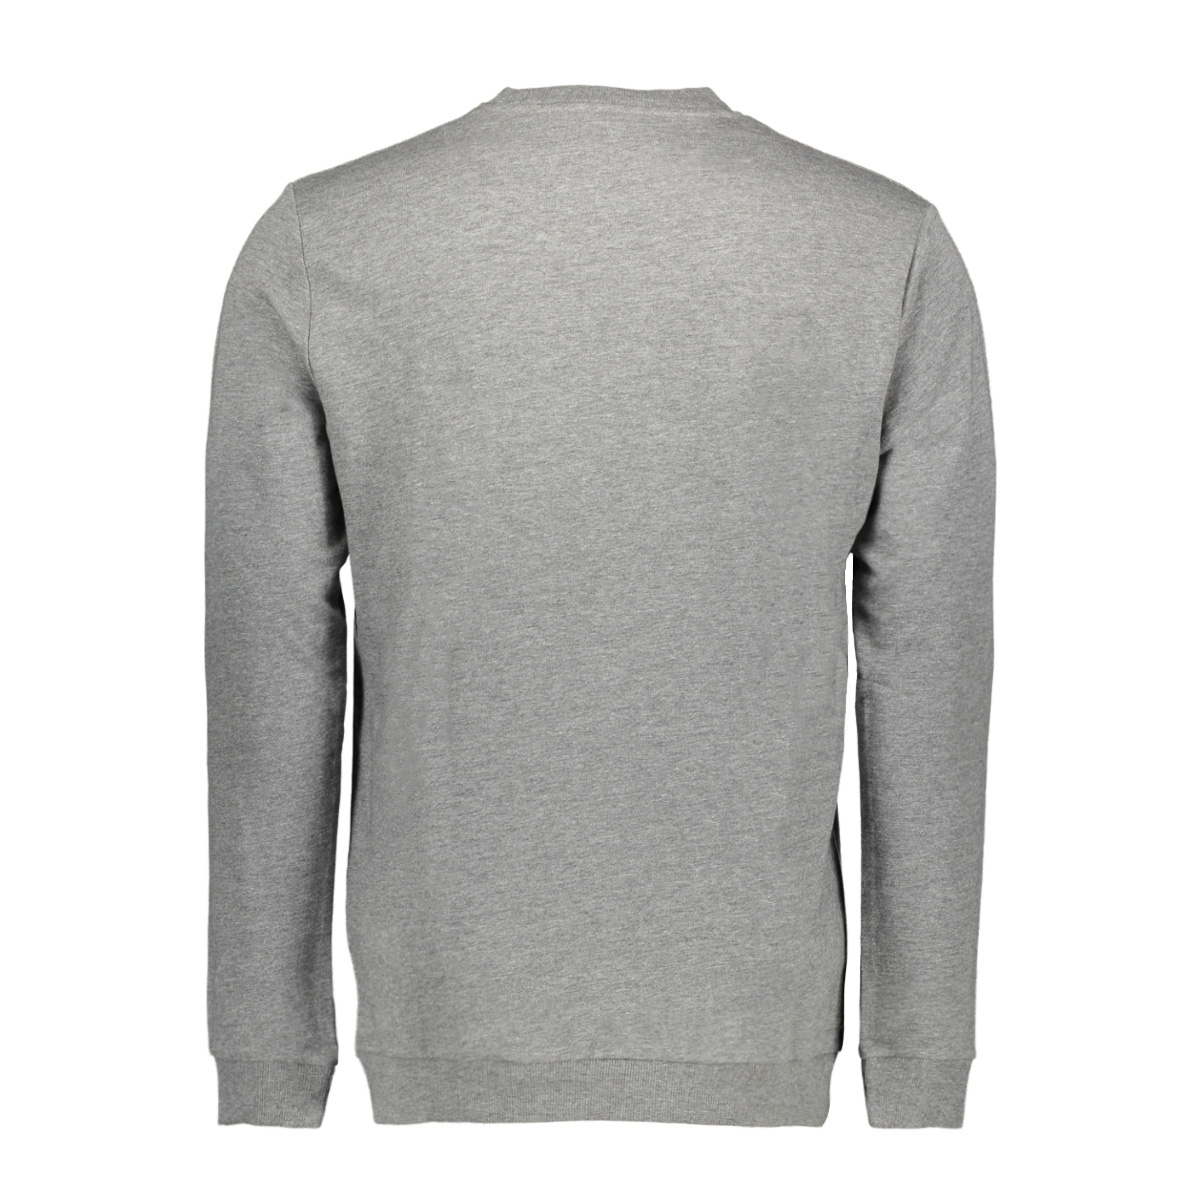 onstrip sweat crew neck 22008254 only & sons sweater medium grey melange